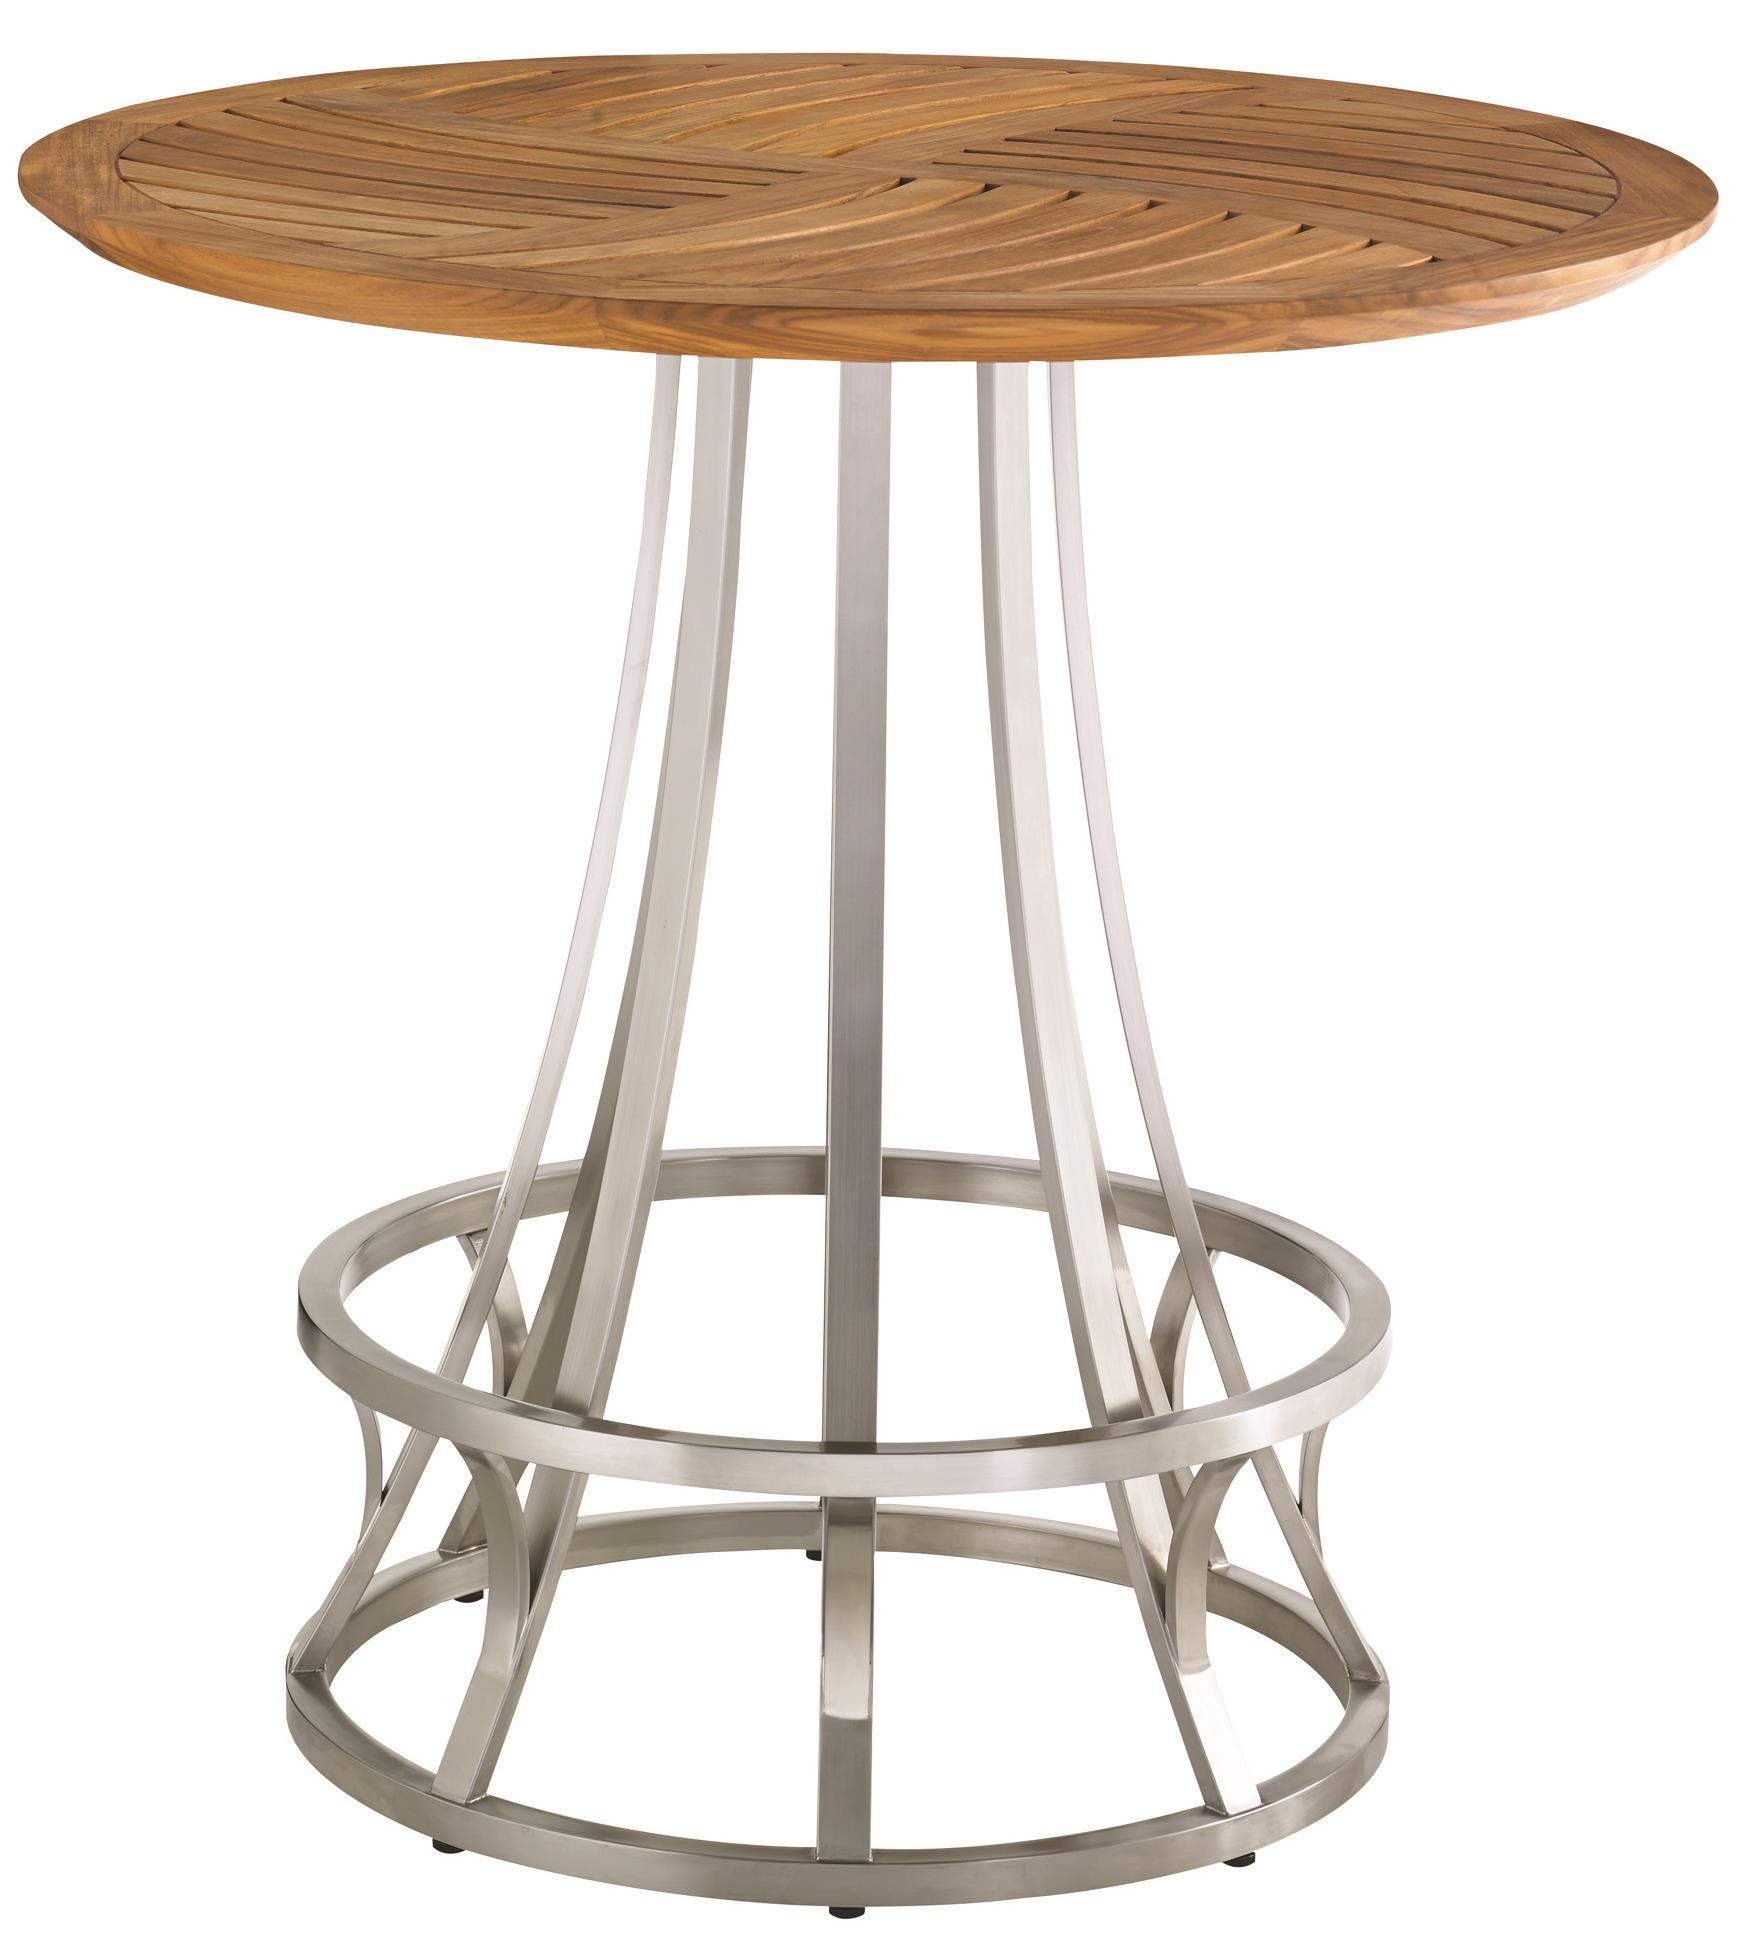 Tommy Bahama Outdoor Living Tres Chic Bistro Table - Item Number: 3401-873TT+3401-873BB